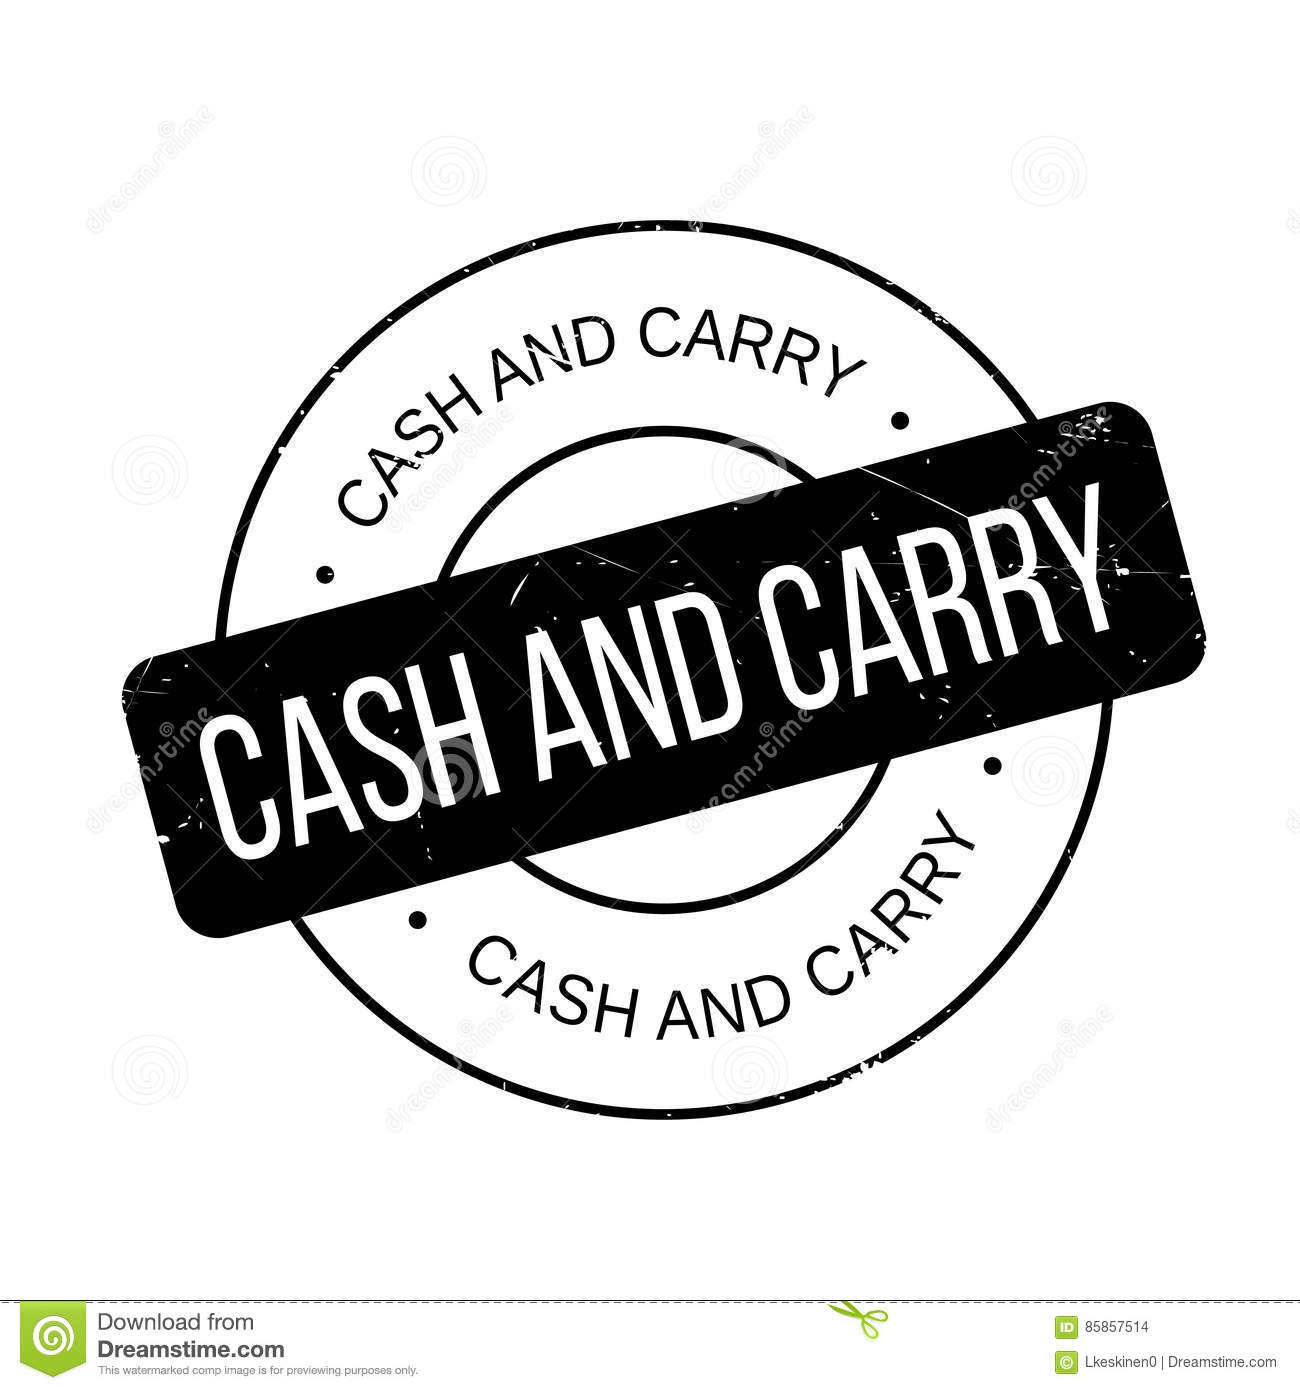 Cash And Carry Rubber Stamp Stock Illustration - Image ...